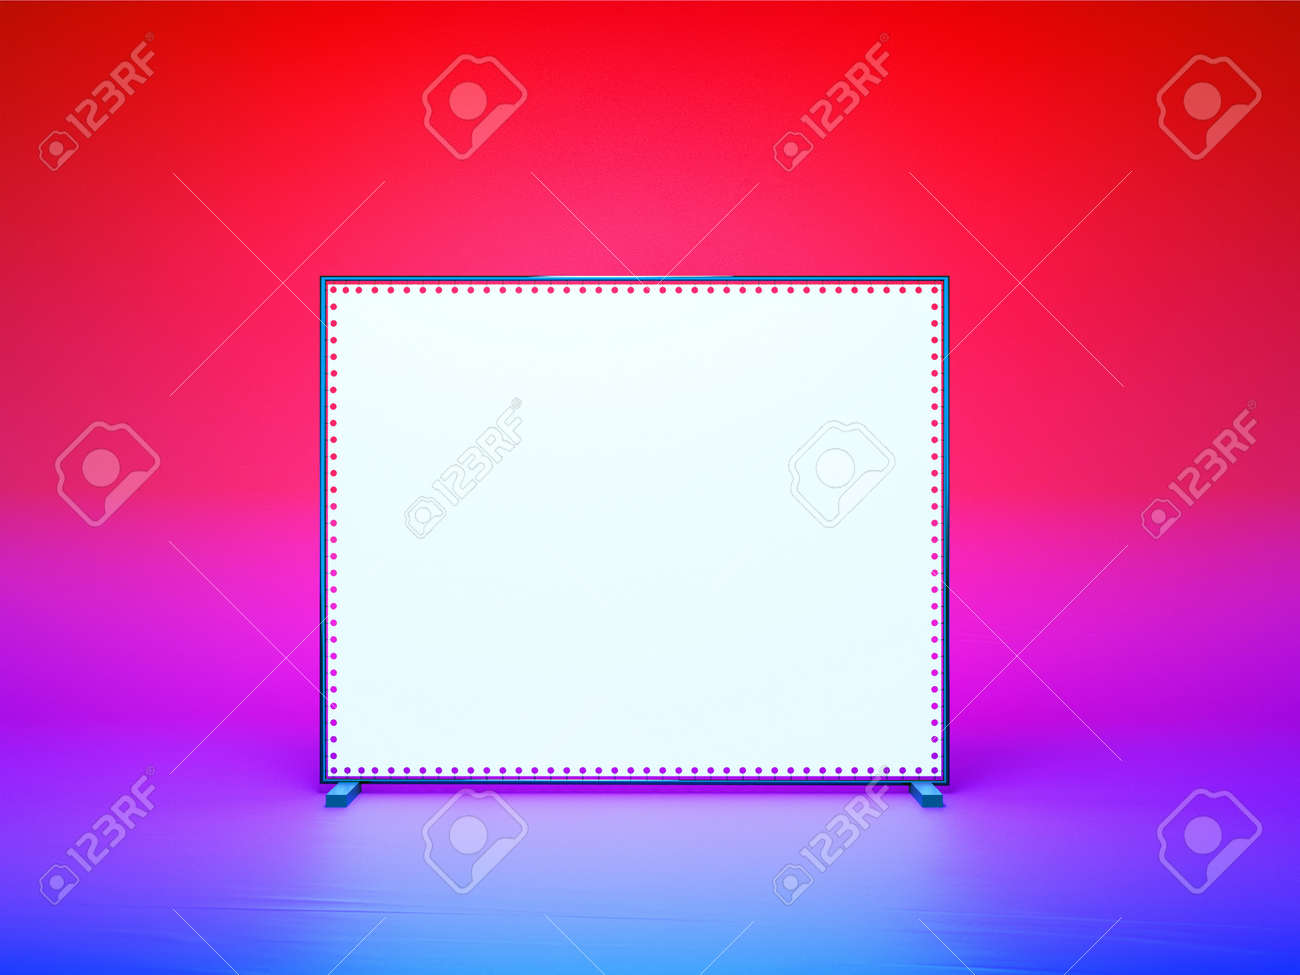 Free photo booth background template